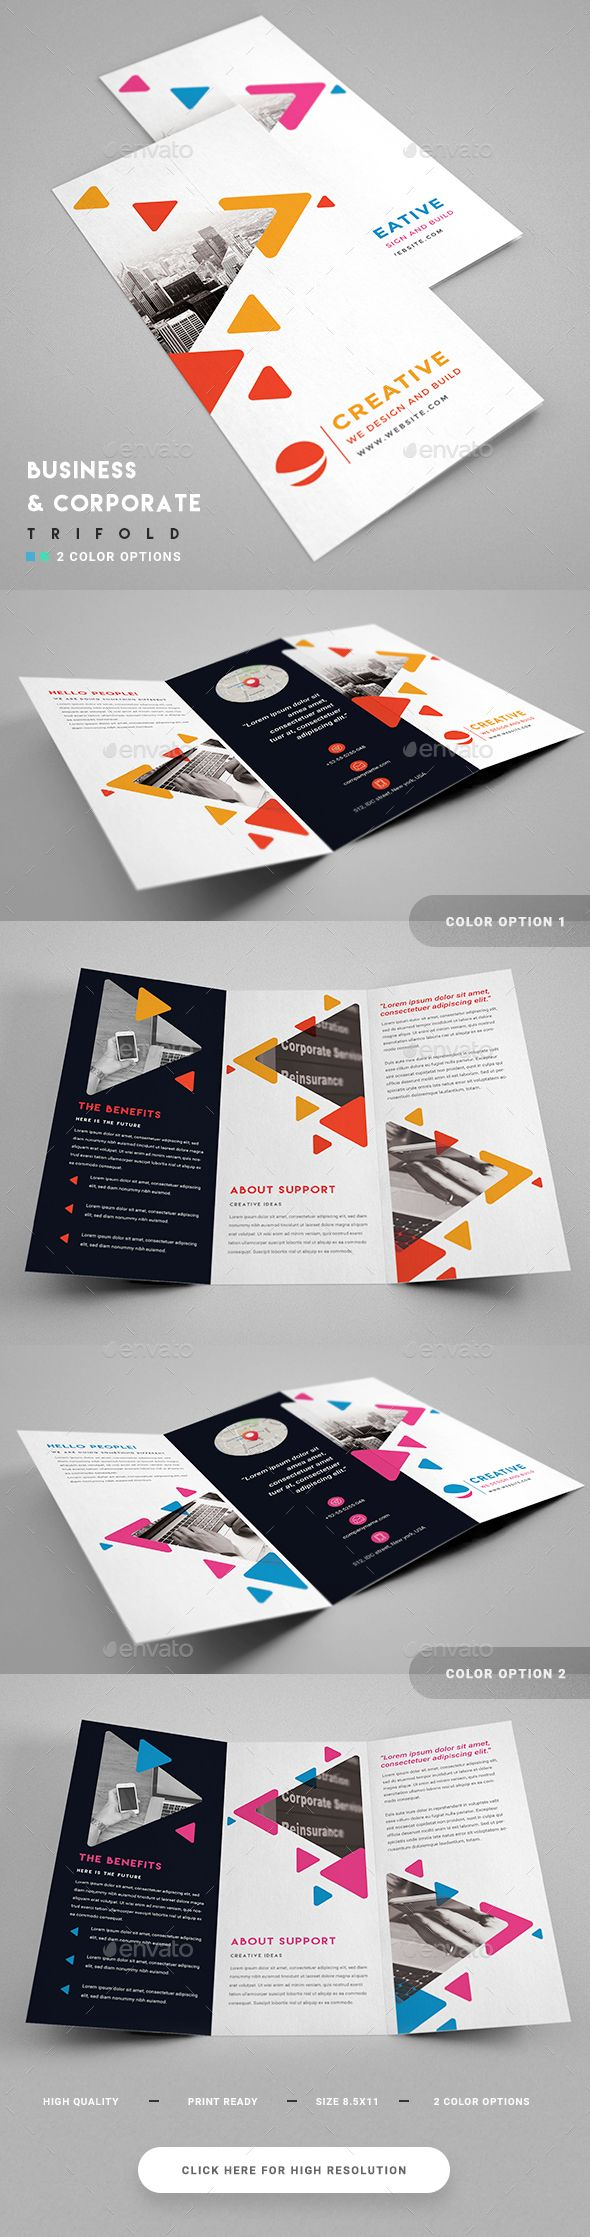 Creative Corporate Trifold — Photoshop PSD #official #agency • Download ➝ https://graphicriver.net/item/creative-corporate-trifold/19127559?ref=pxcr